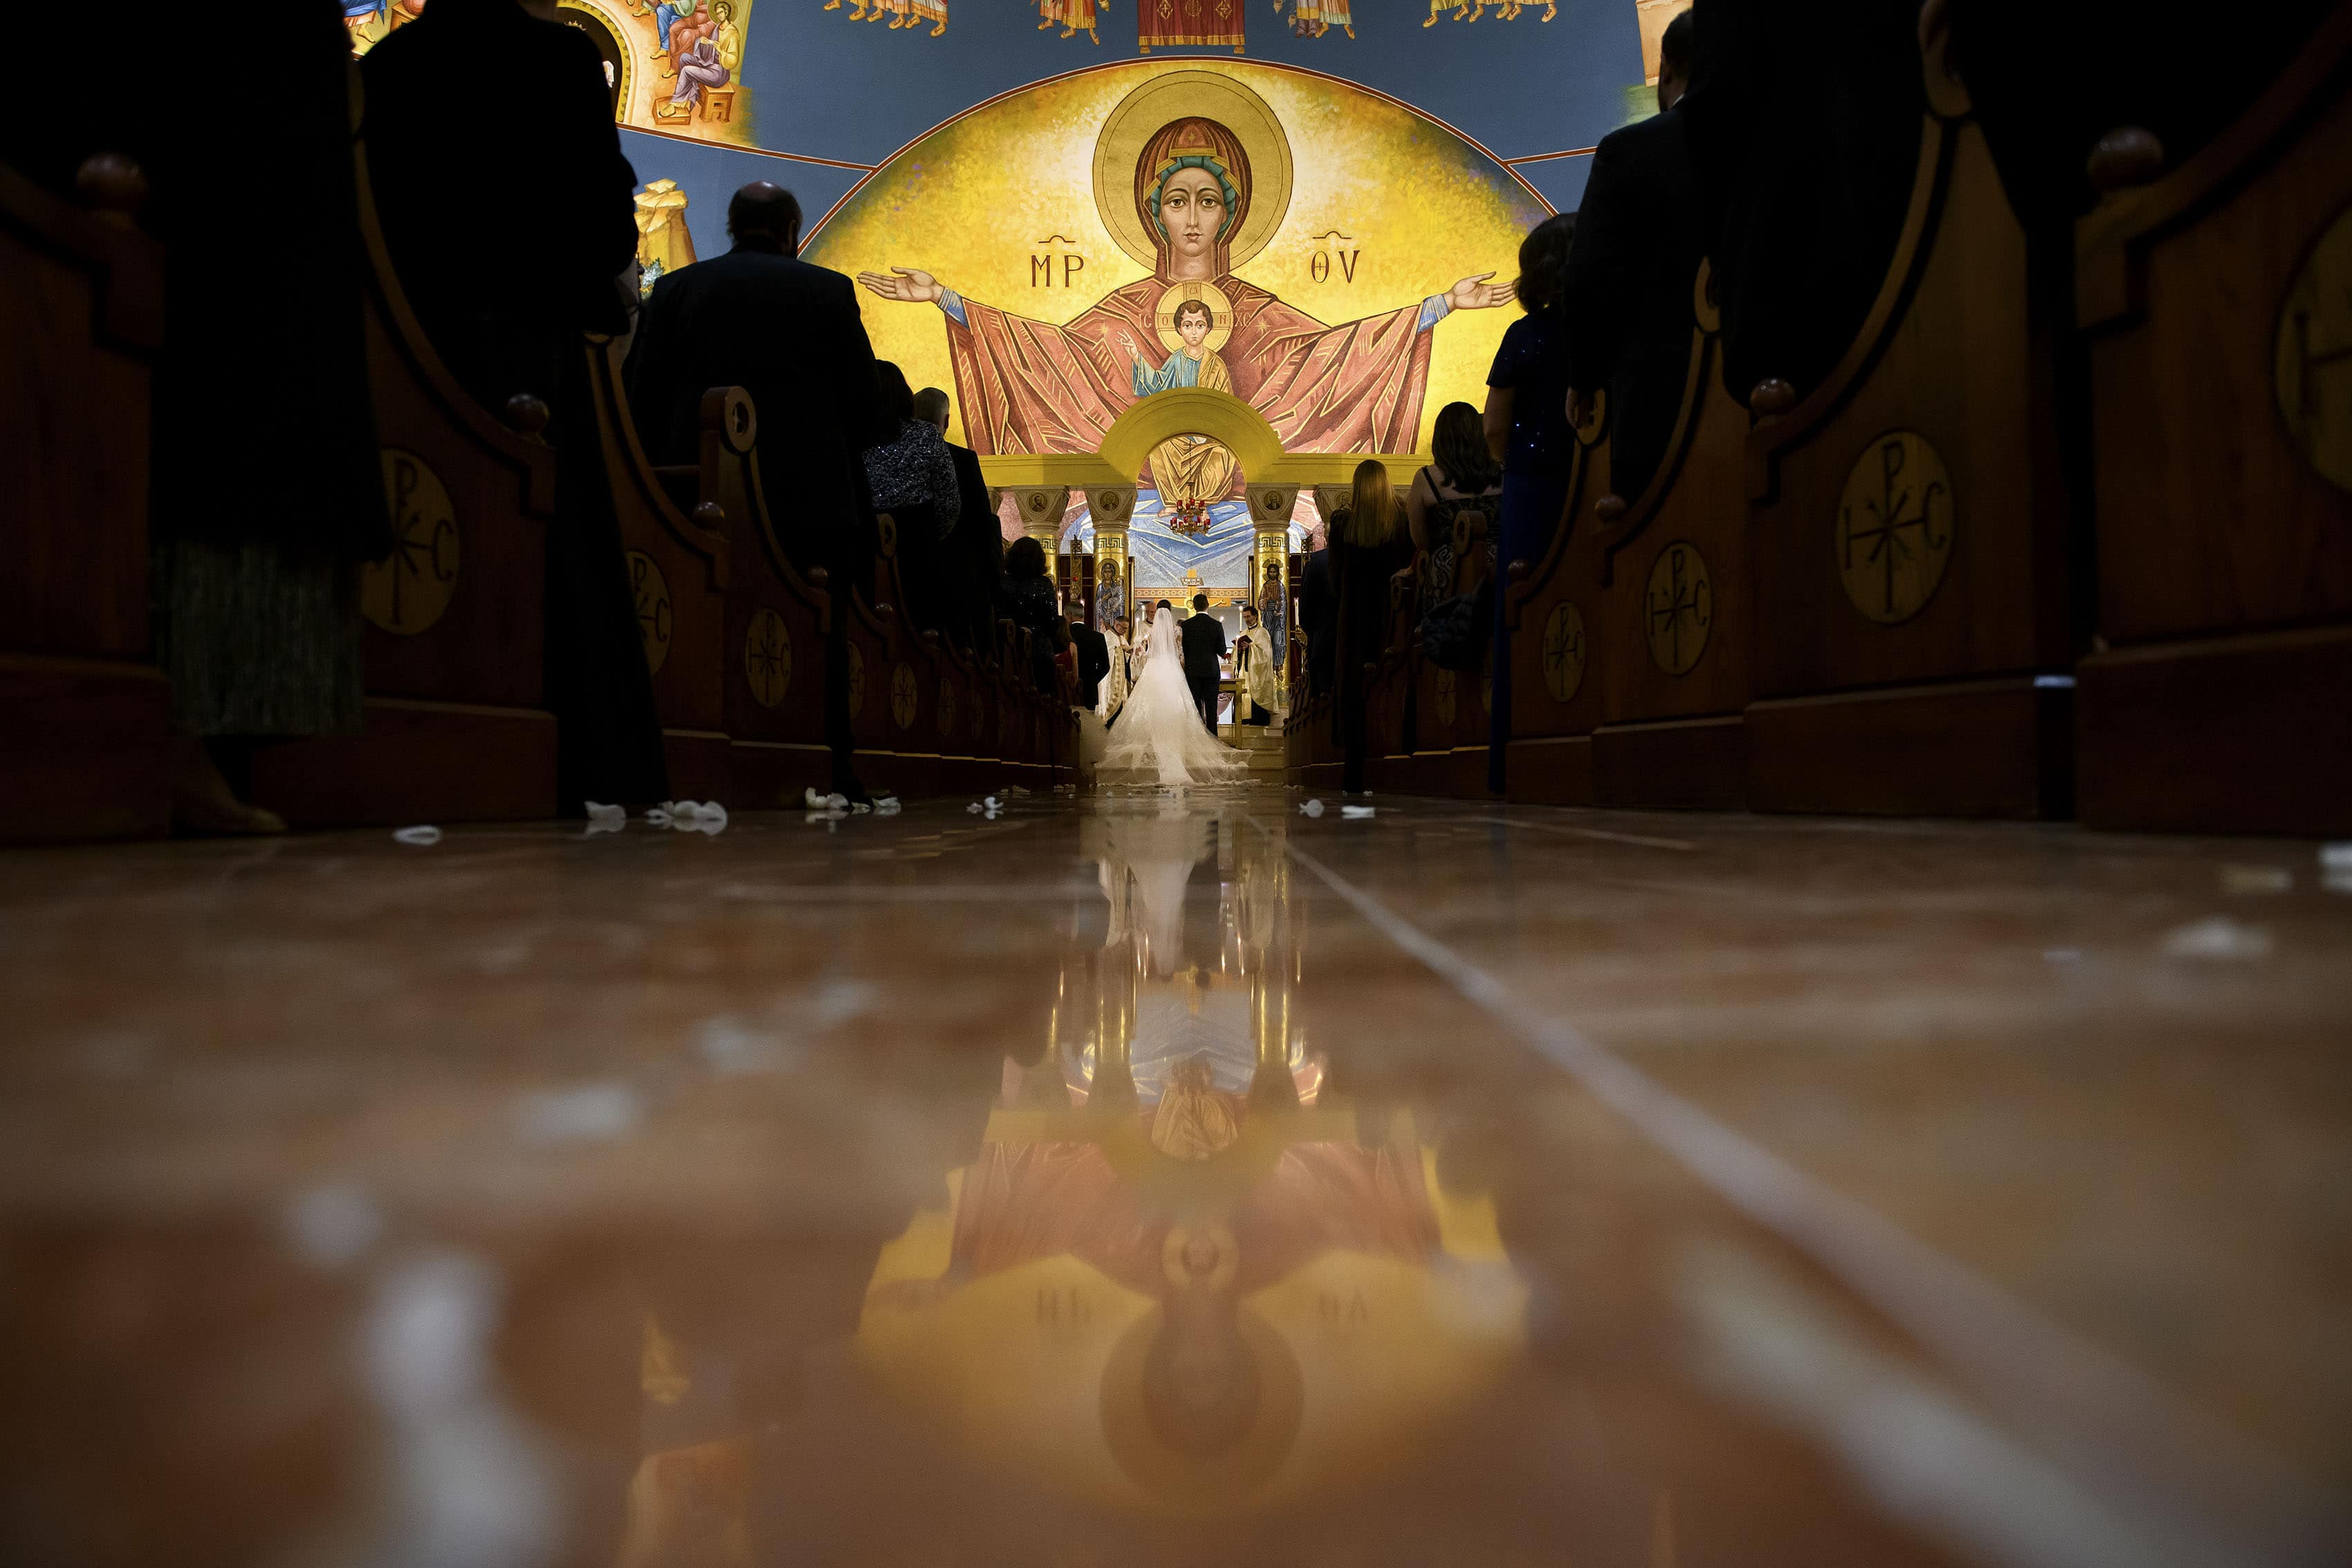 The bride and groom stand at the altar at the Assumption of the Theotokos Greek Orthodox Cathedral during their wedding ceremony